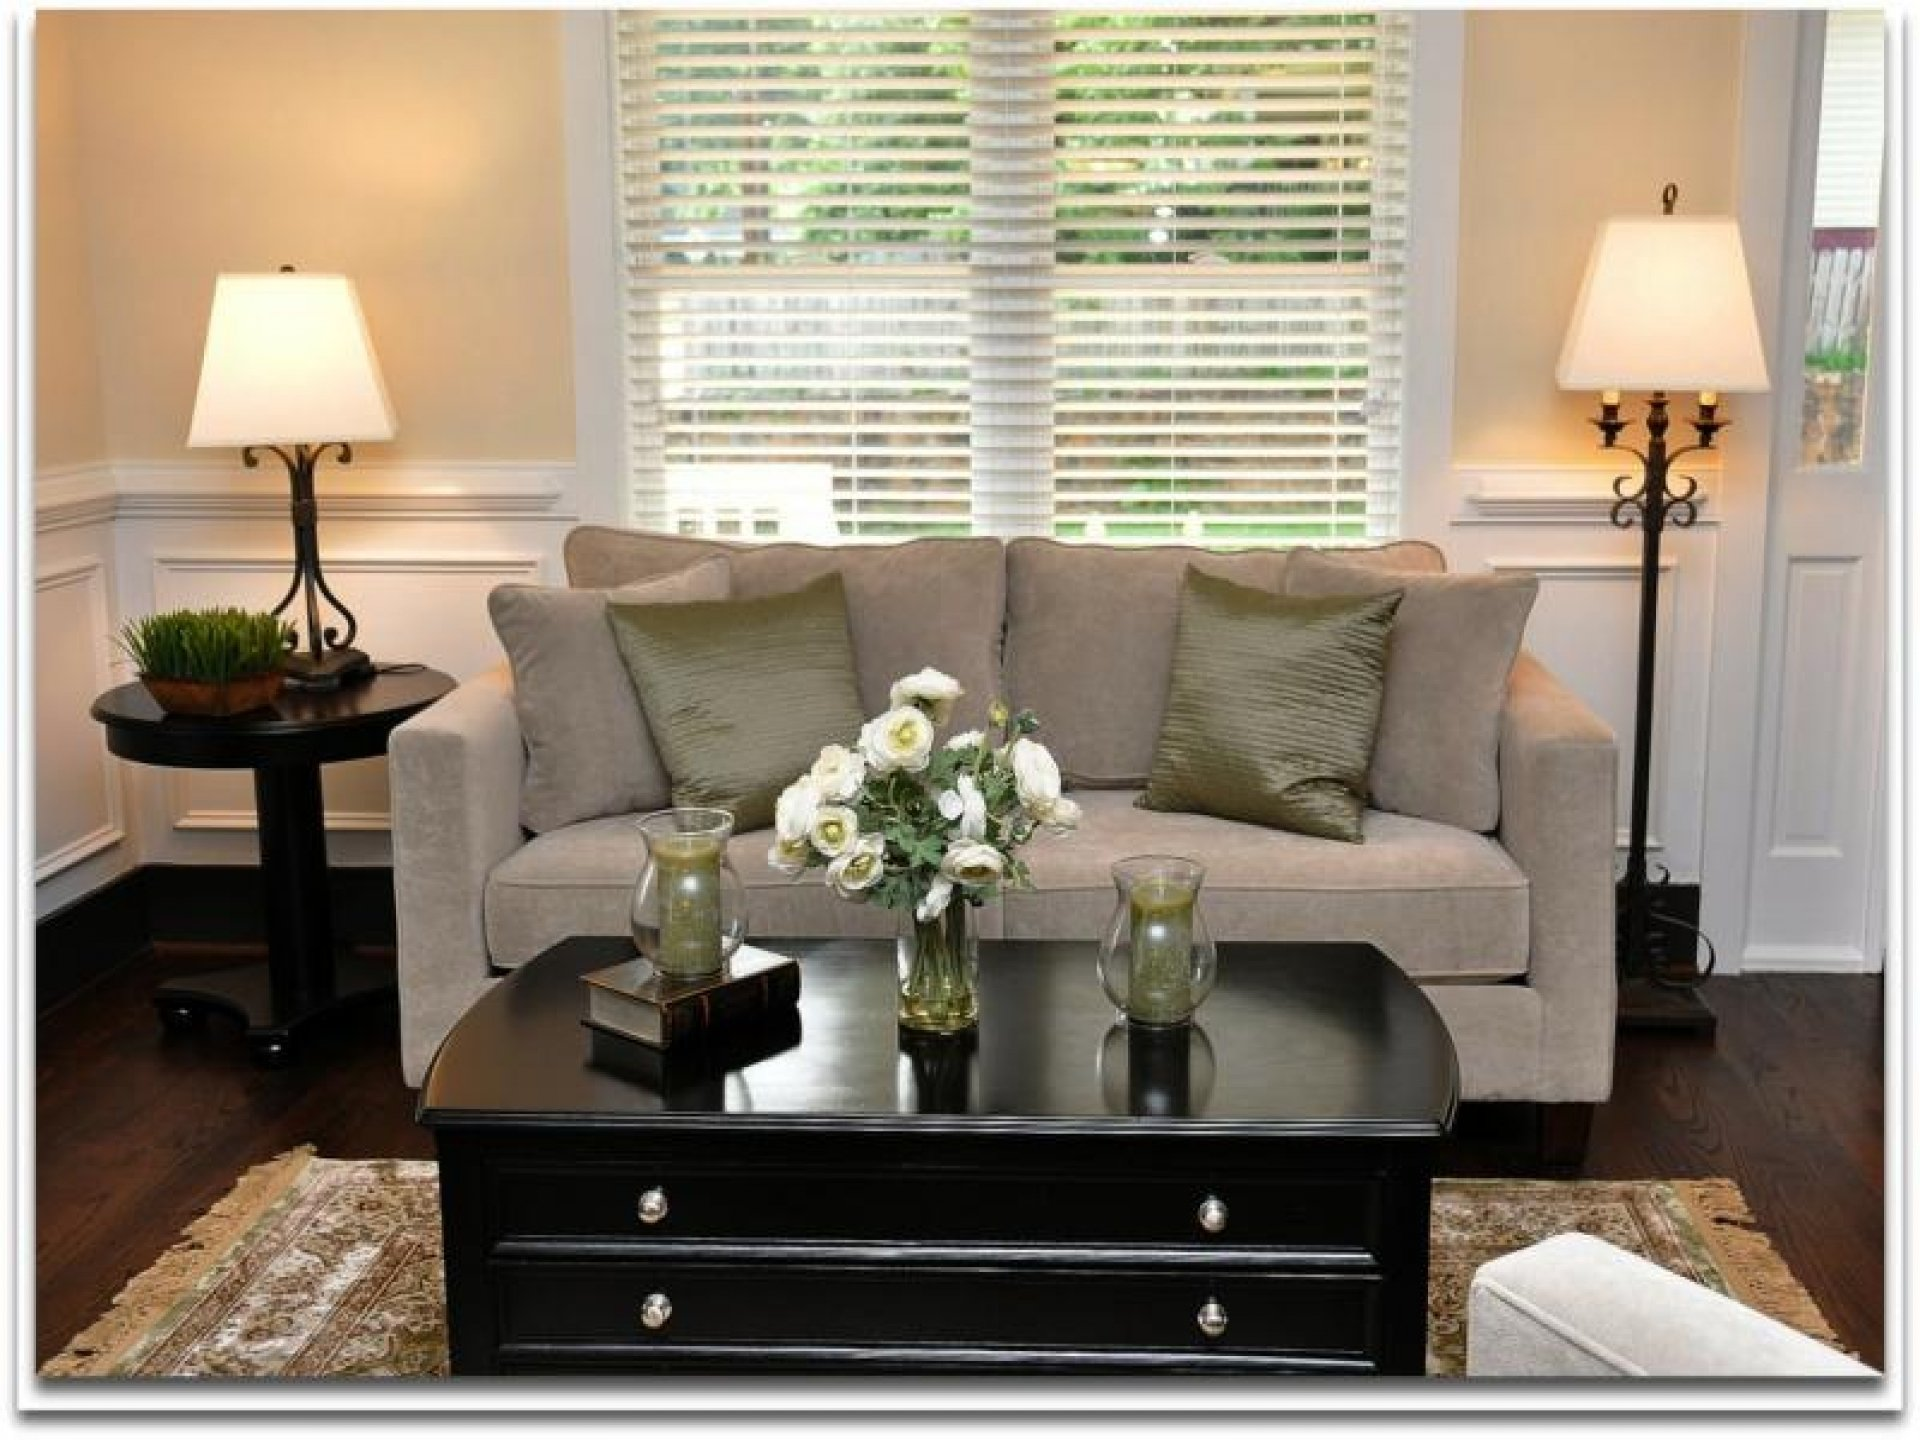 10 Attractive Living Room Decor Ideas On A Budget diy small living room ideas on a budget small living room ideas with 2021